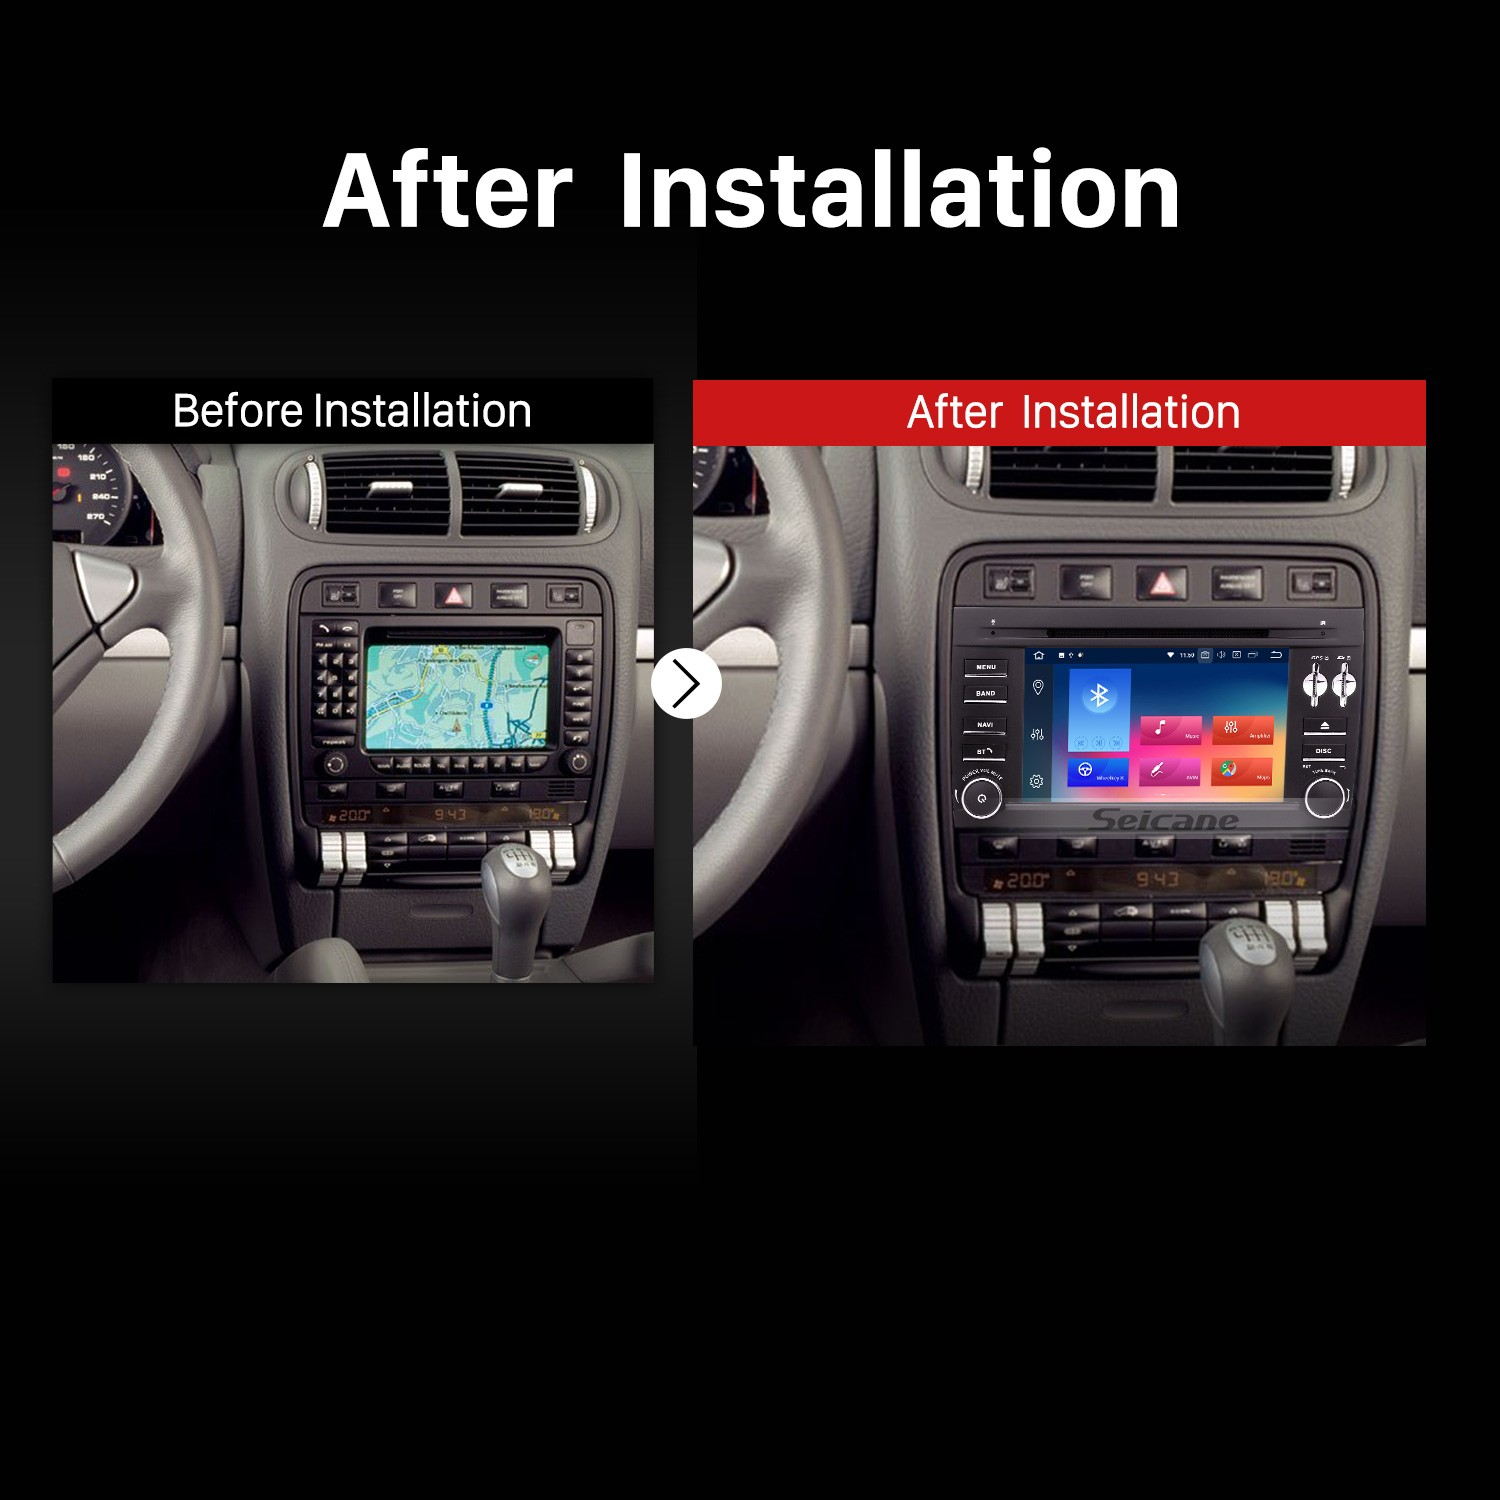 2003 2004 2005 2006-2010 Porsche Cayenne Car Stereo after installation